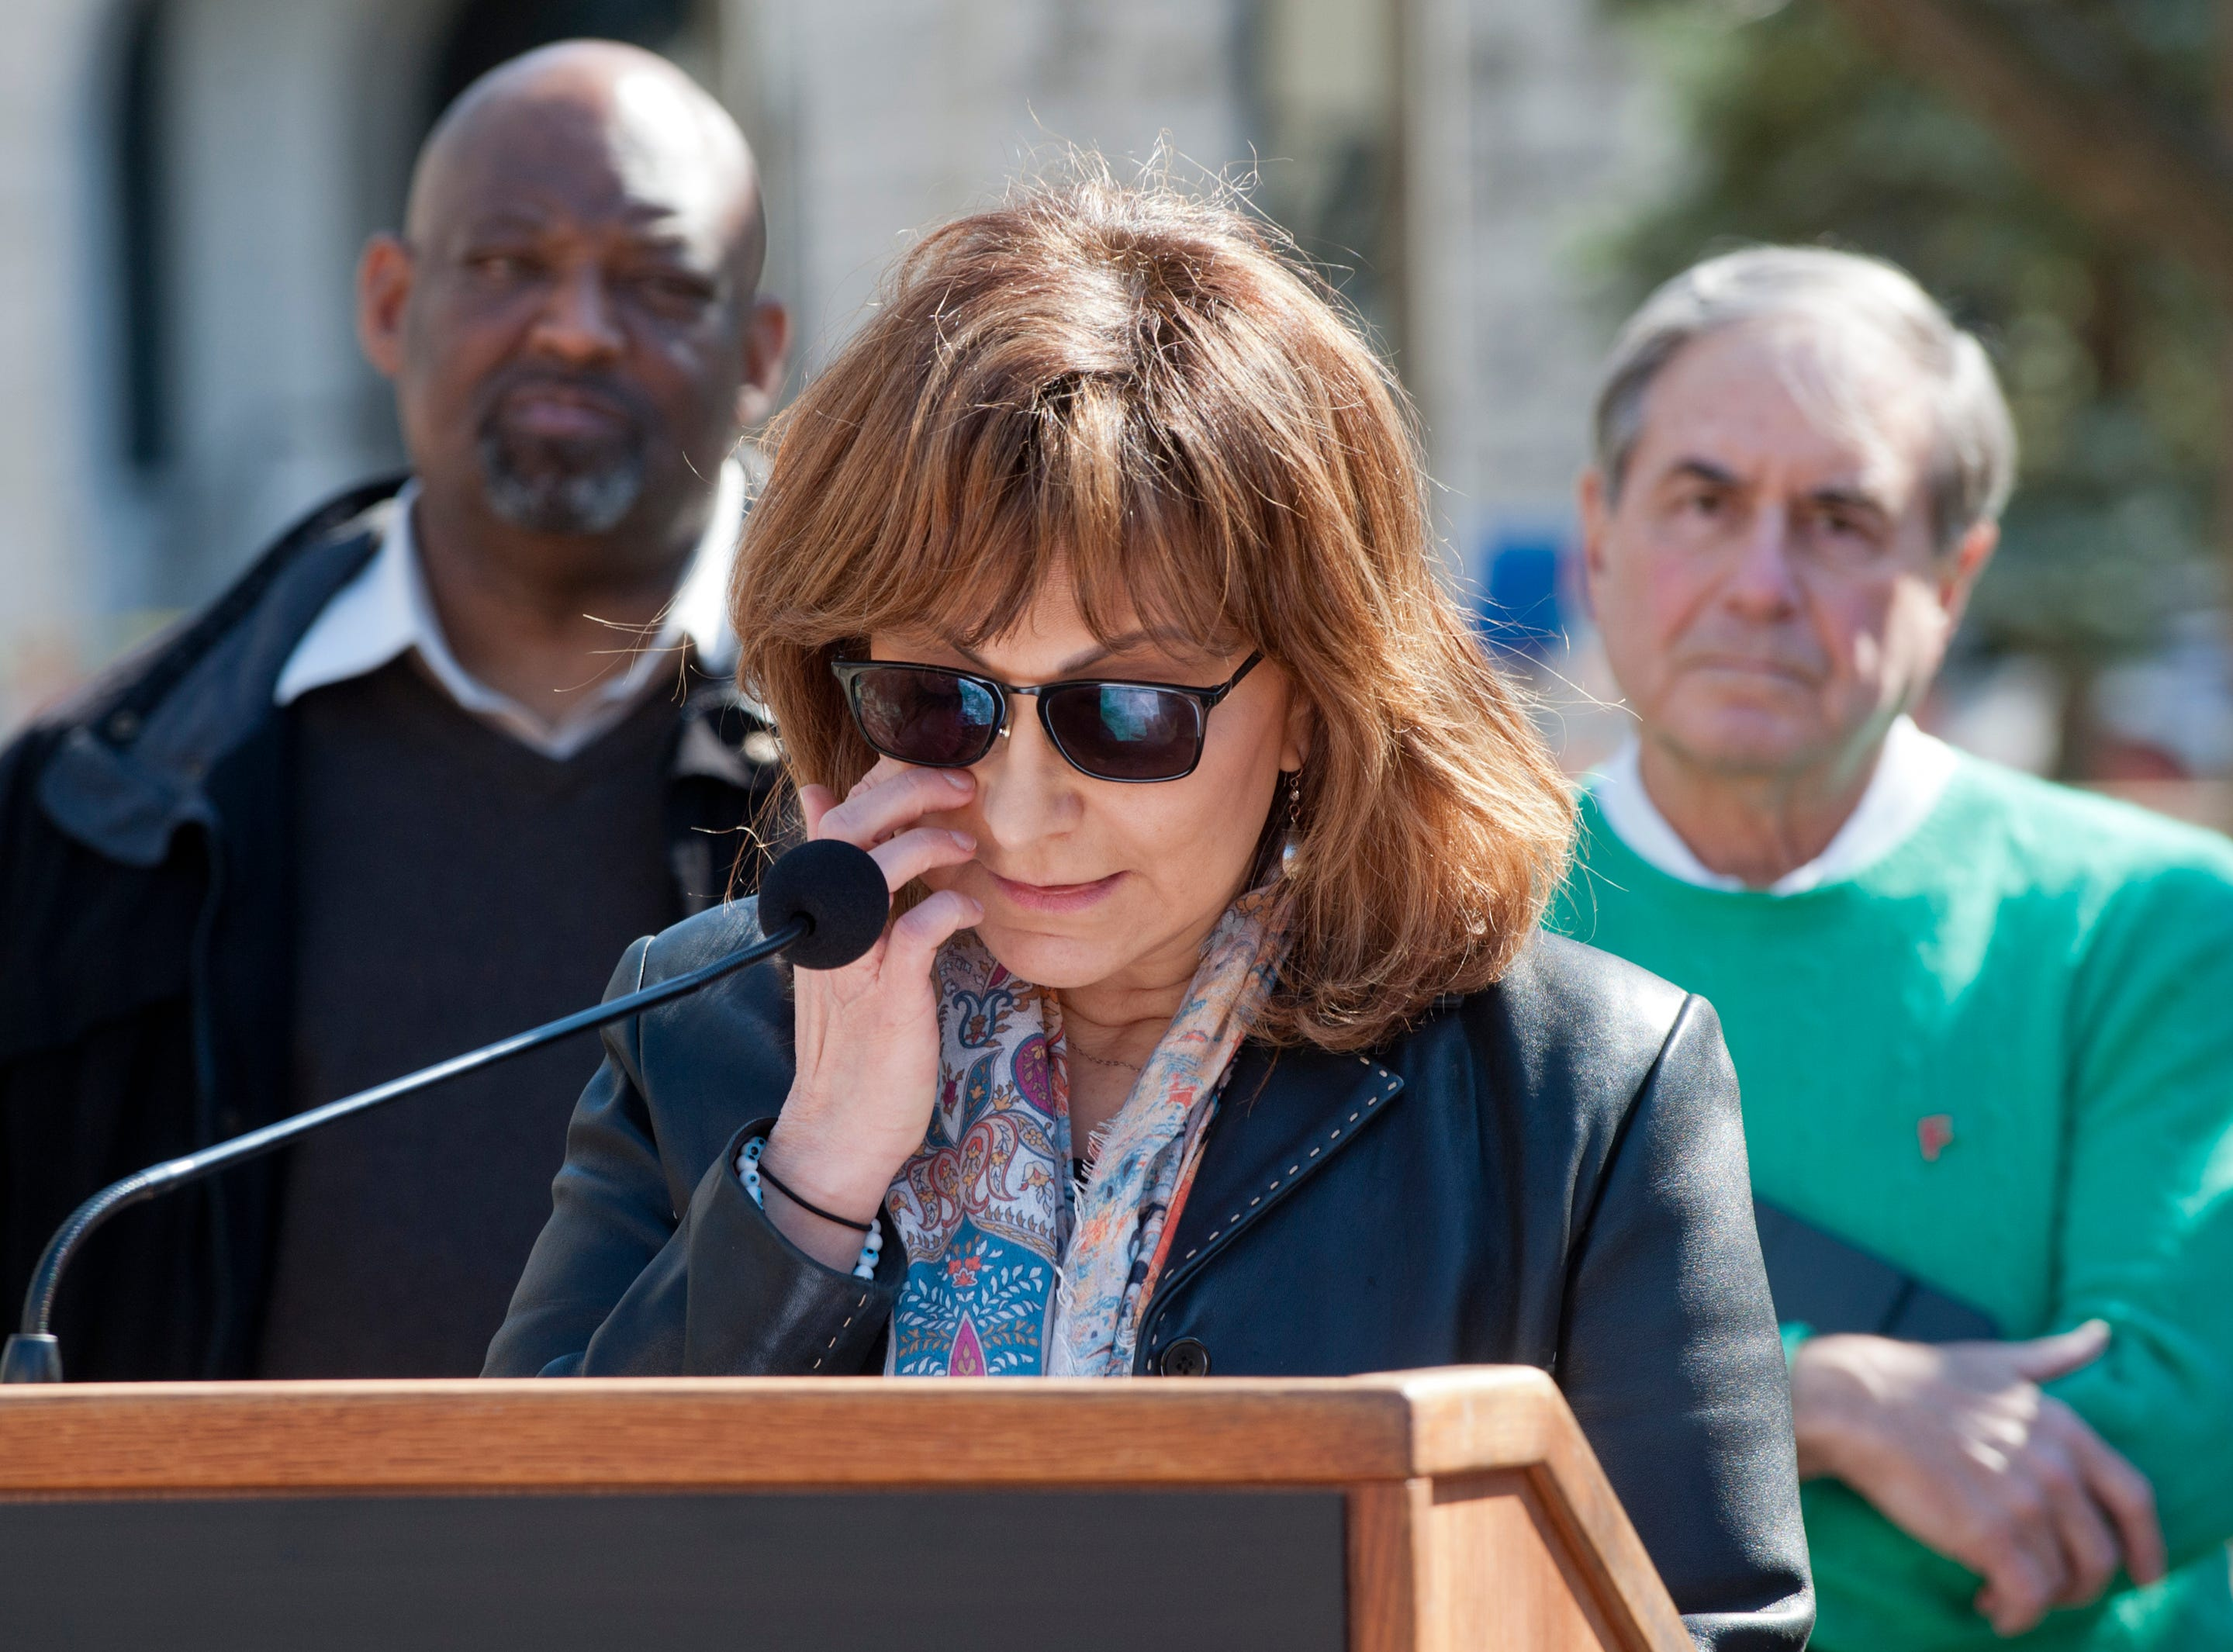 Haleh Karimi, executive director of Louisville's Interfaith Paths to Peace, wipes tears from her eyes as she addresses those gathered at the vigil. Behind her are  James Linton, president of Community Connections Group of Louisville, left, and U.S. Representative John Yarmuth (D-Louisville,) right.